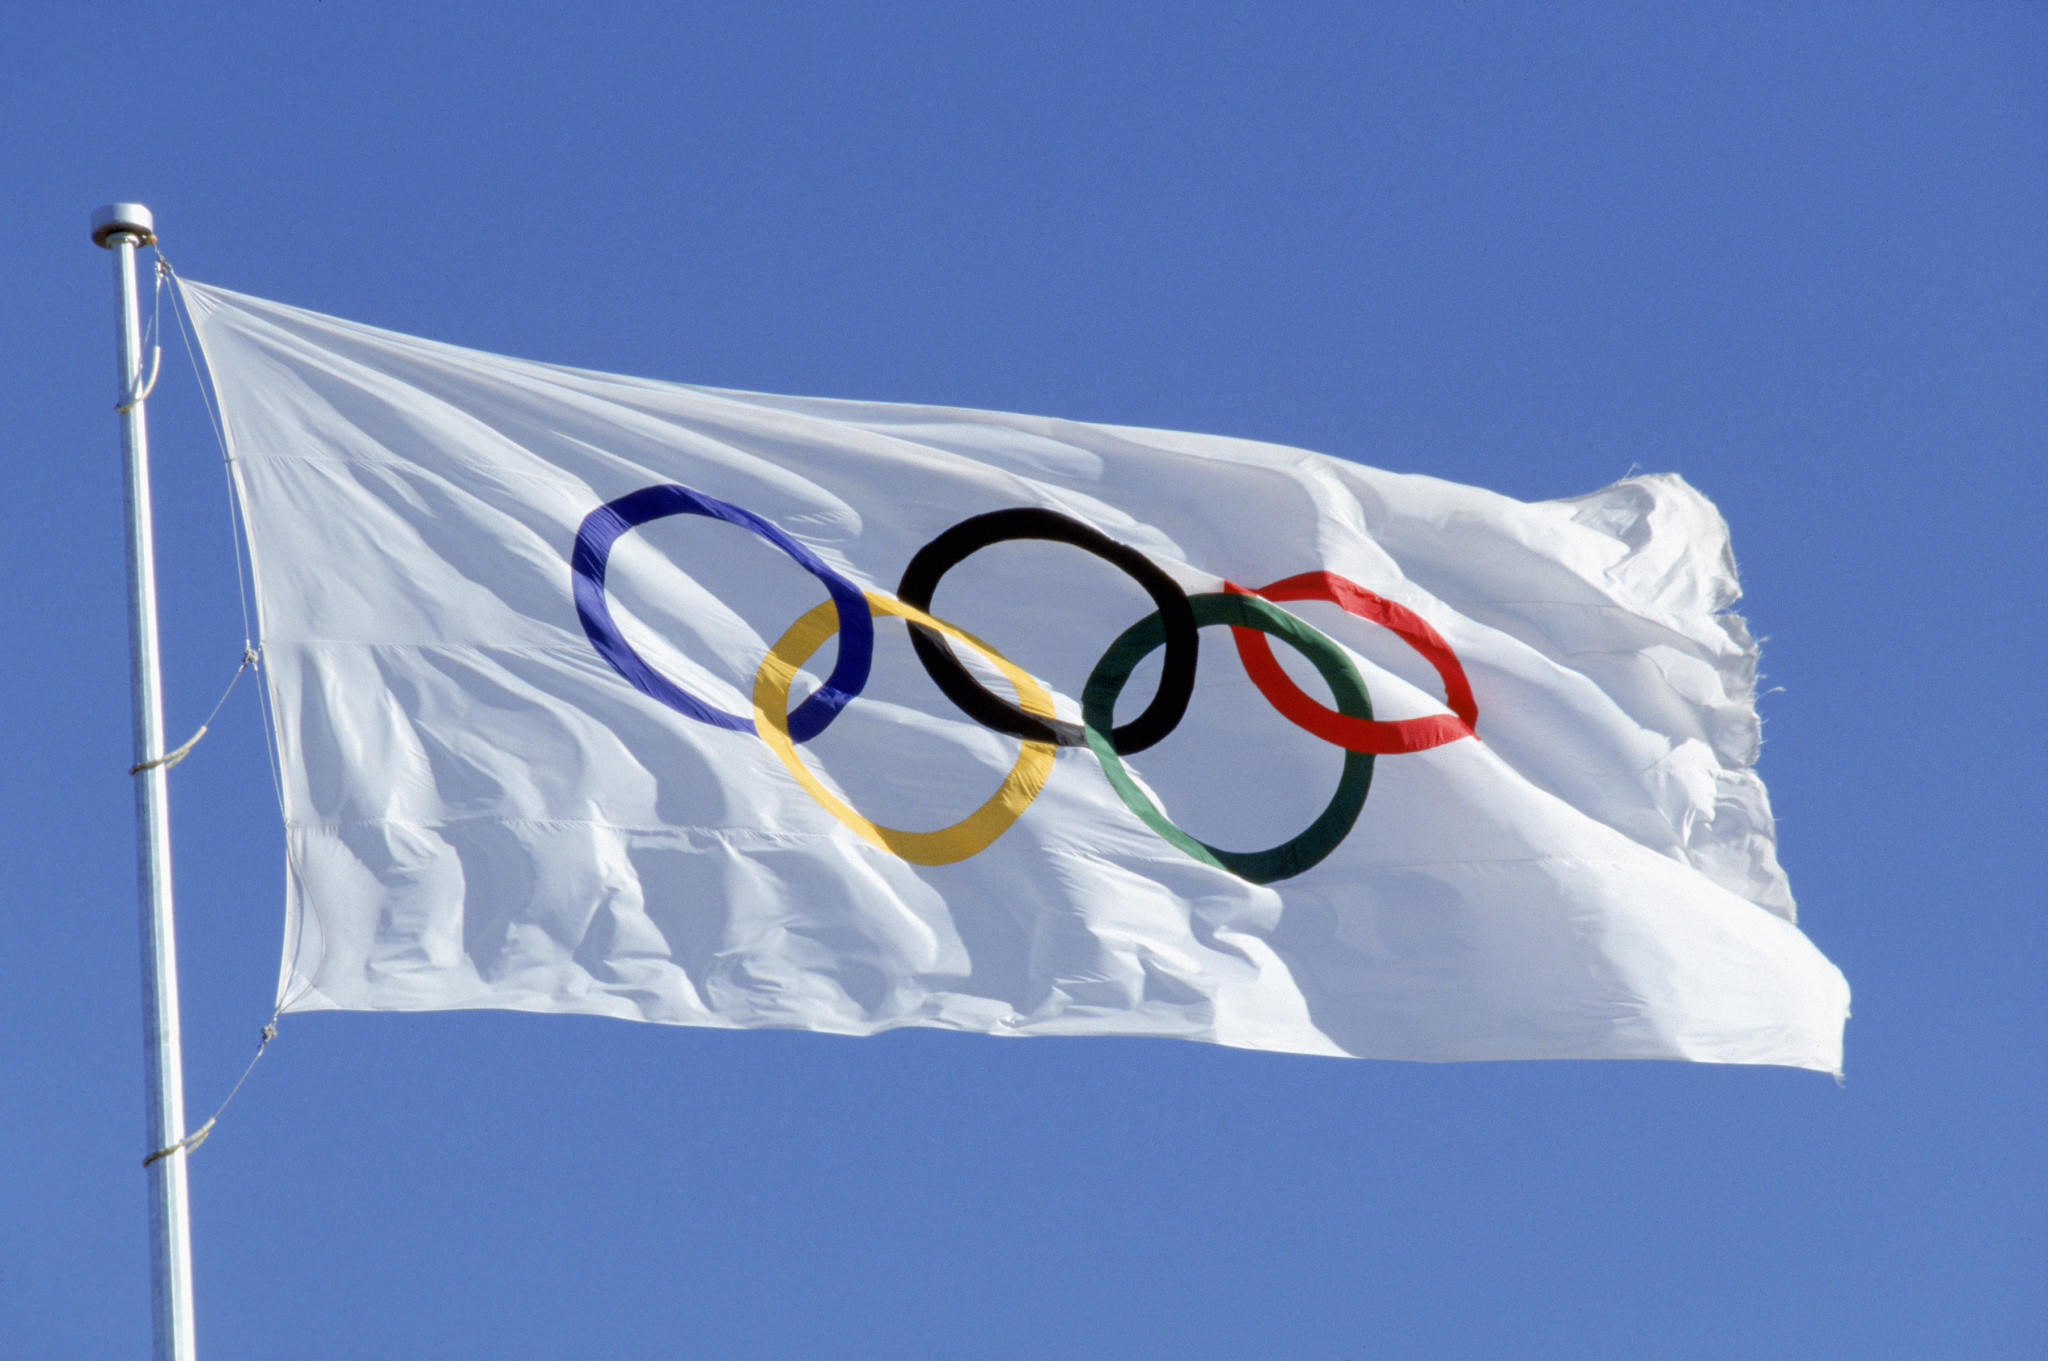 Study finds cost overruns of between 13 and 178 per cent on core capital investments for recent Olympics